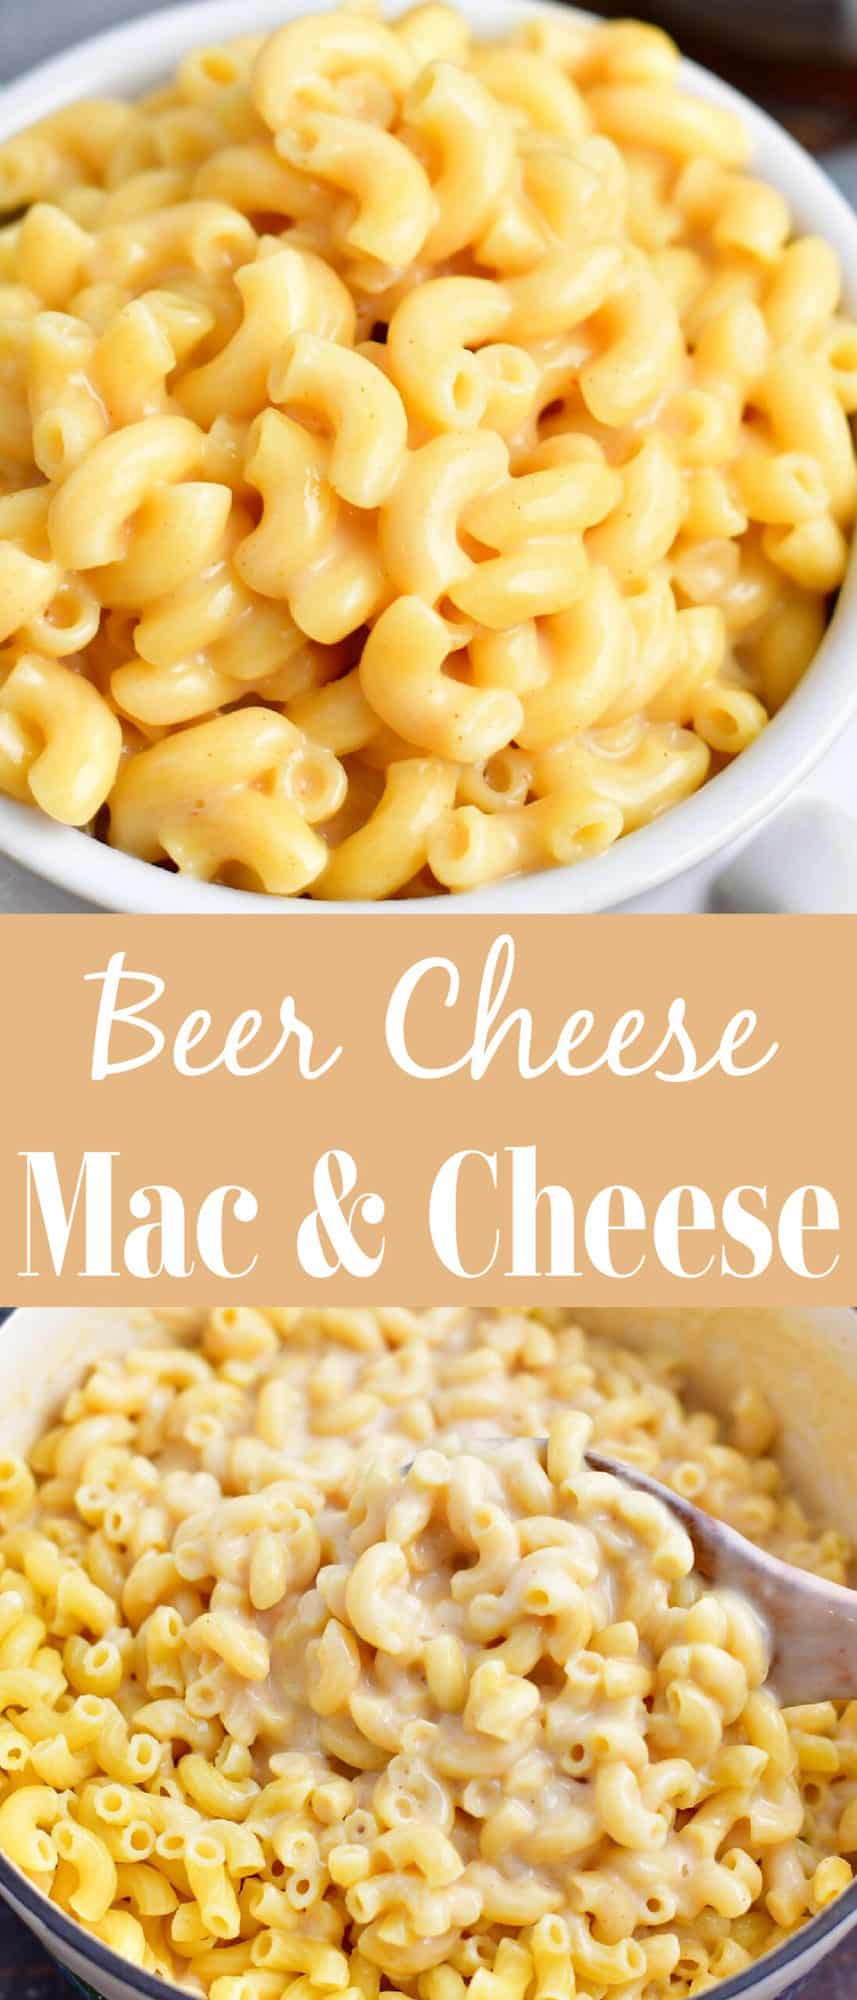 titled photo collage (and shown): beer cheese mac and cheese